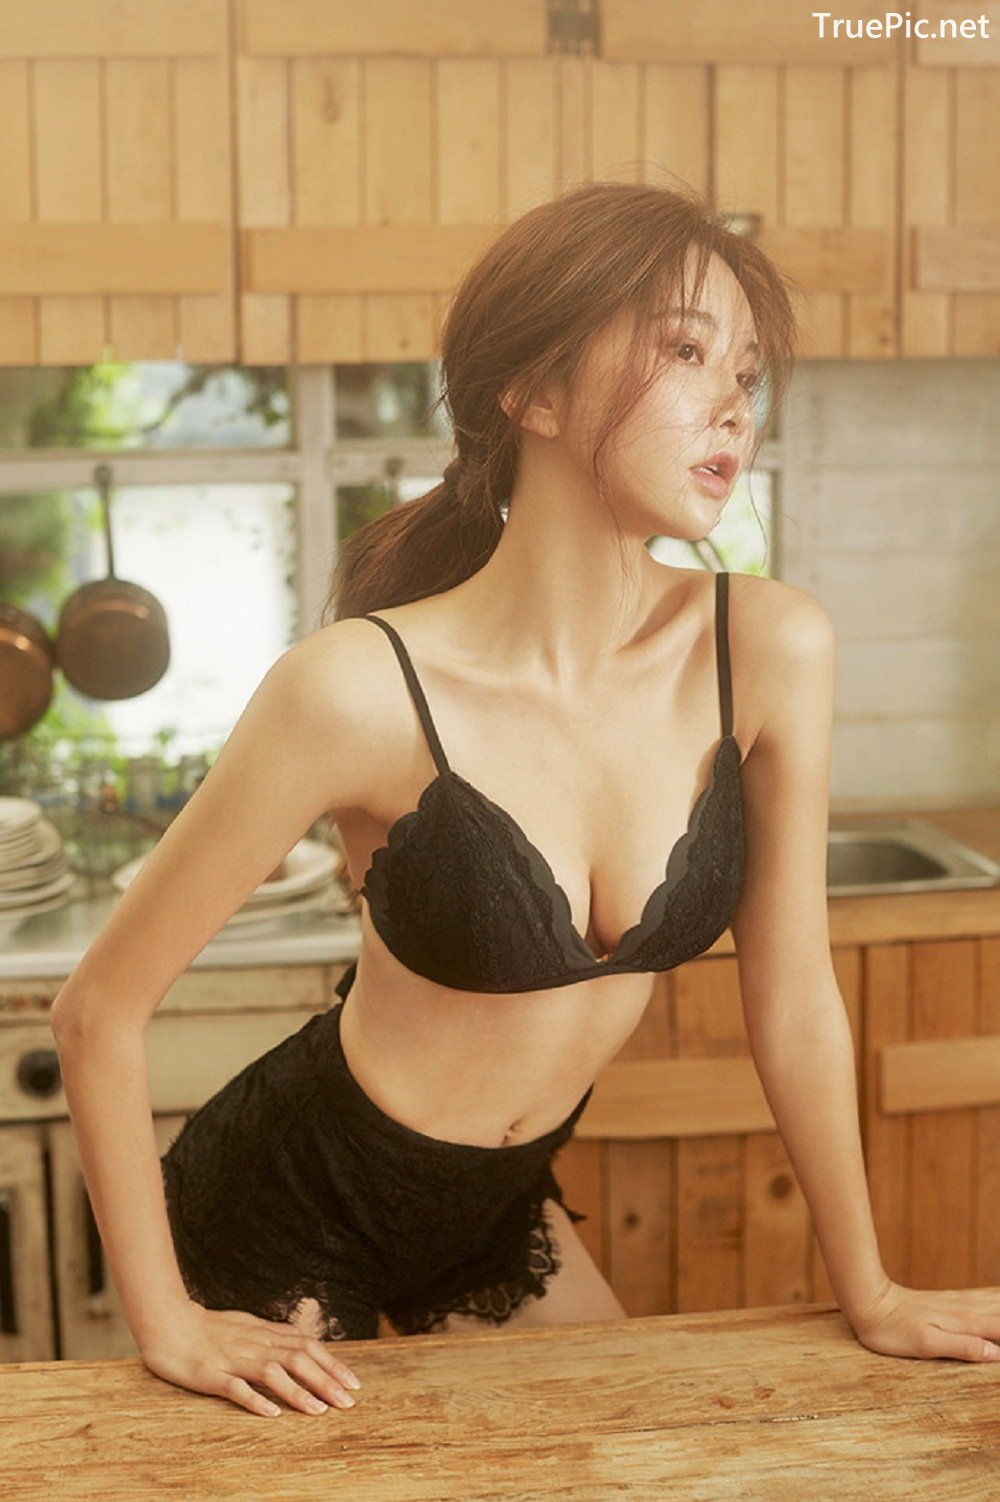 Image-Park-Soo-Yeon-Black-Red-and-White-Lingerie-Korean-Model-Fashion-TruePic.net- Picture-2